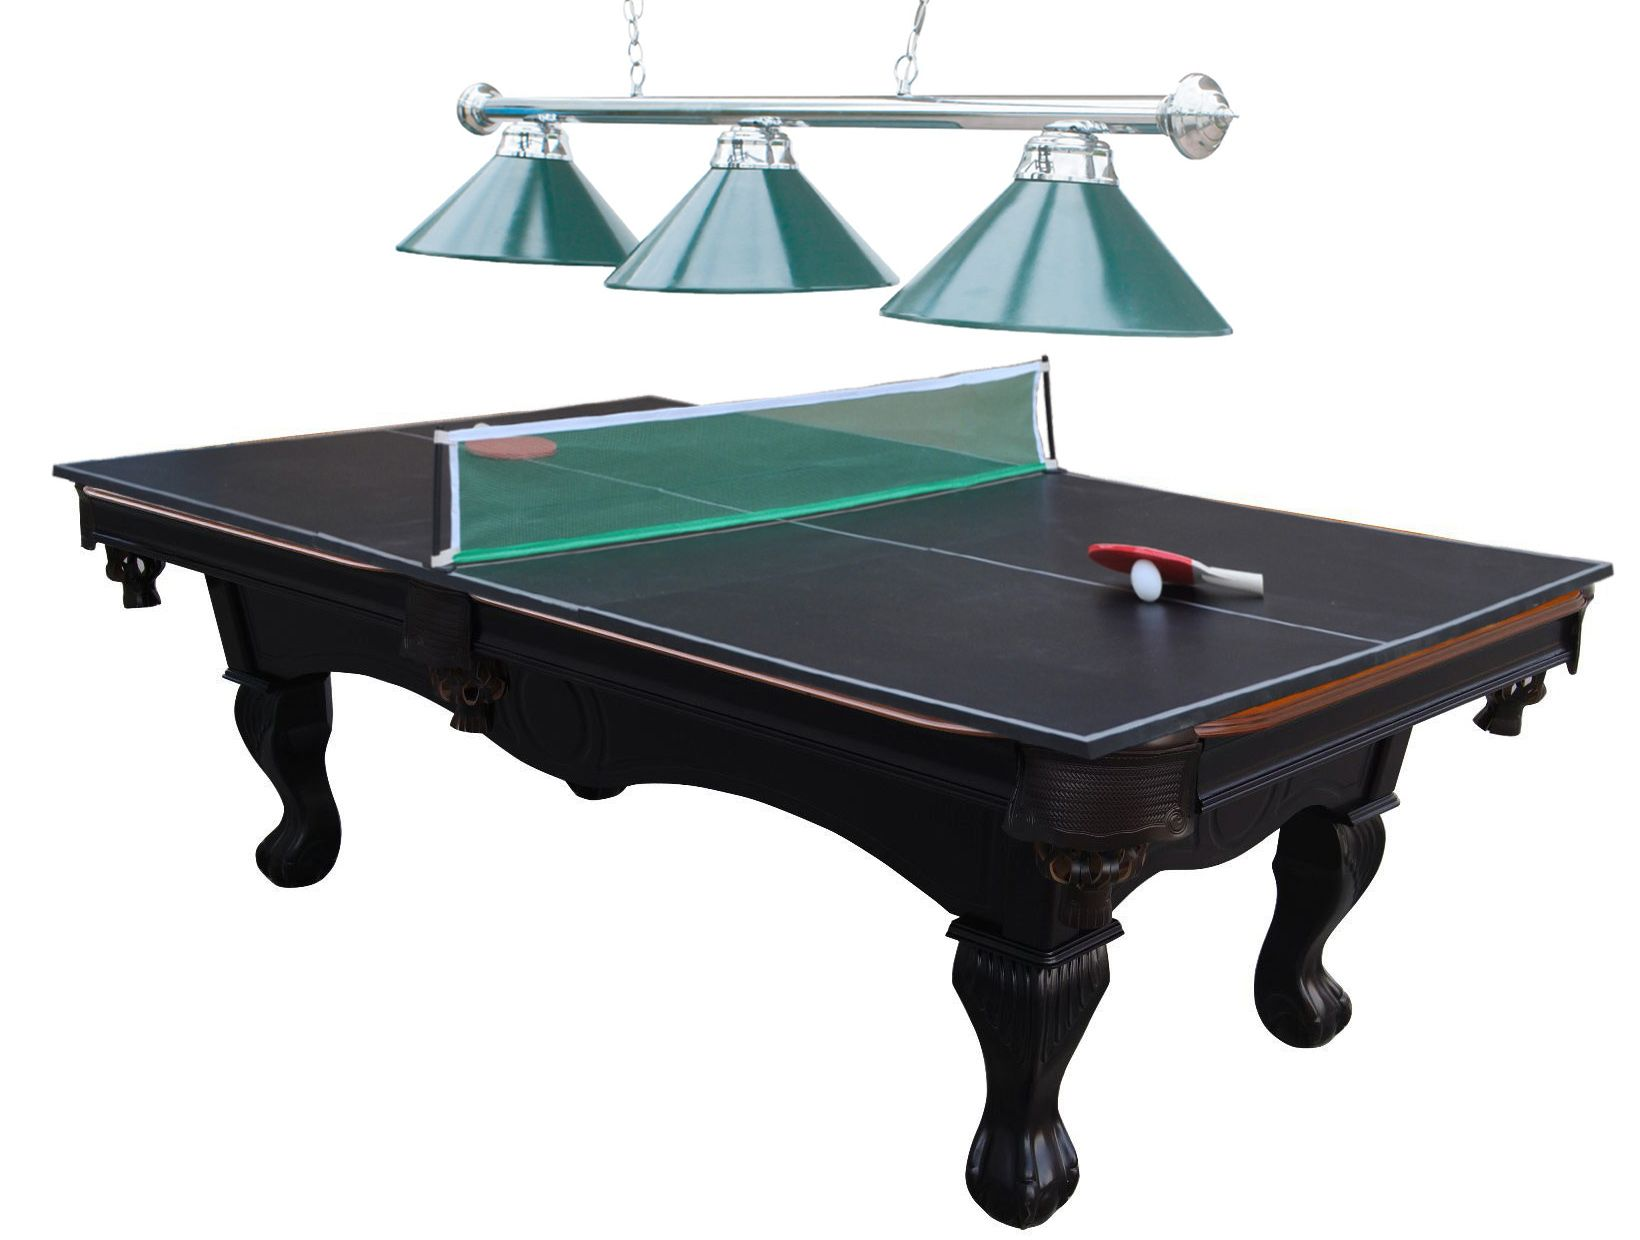 MD Sports 8ft Braeburn Billiard Table w/ Table Tennis and Lamp (Box one of two- MUST PURCHASE BOTH ITEMS TO GET A COMPLETE TABLE)